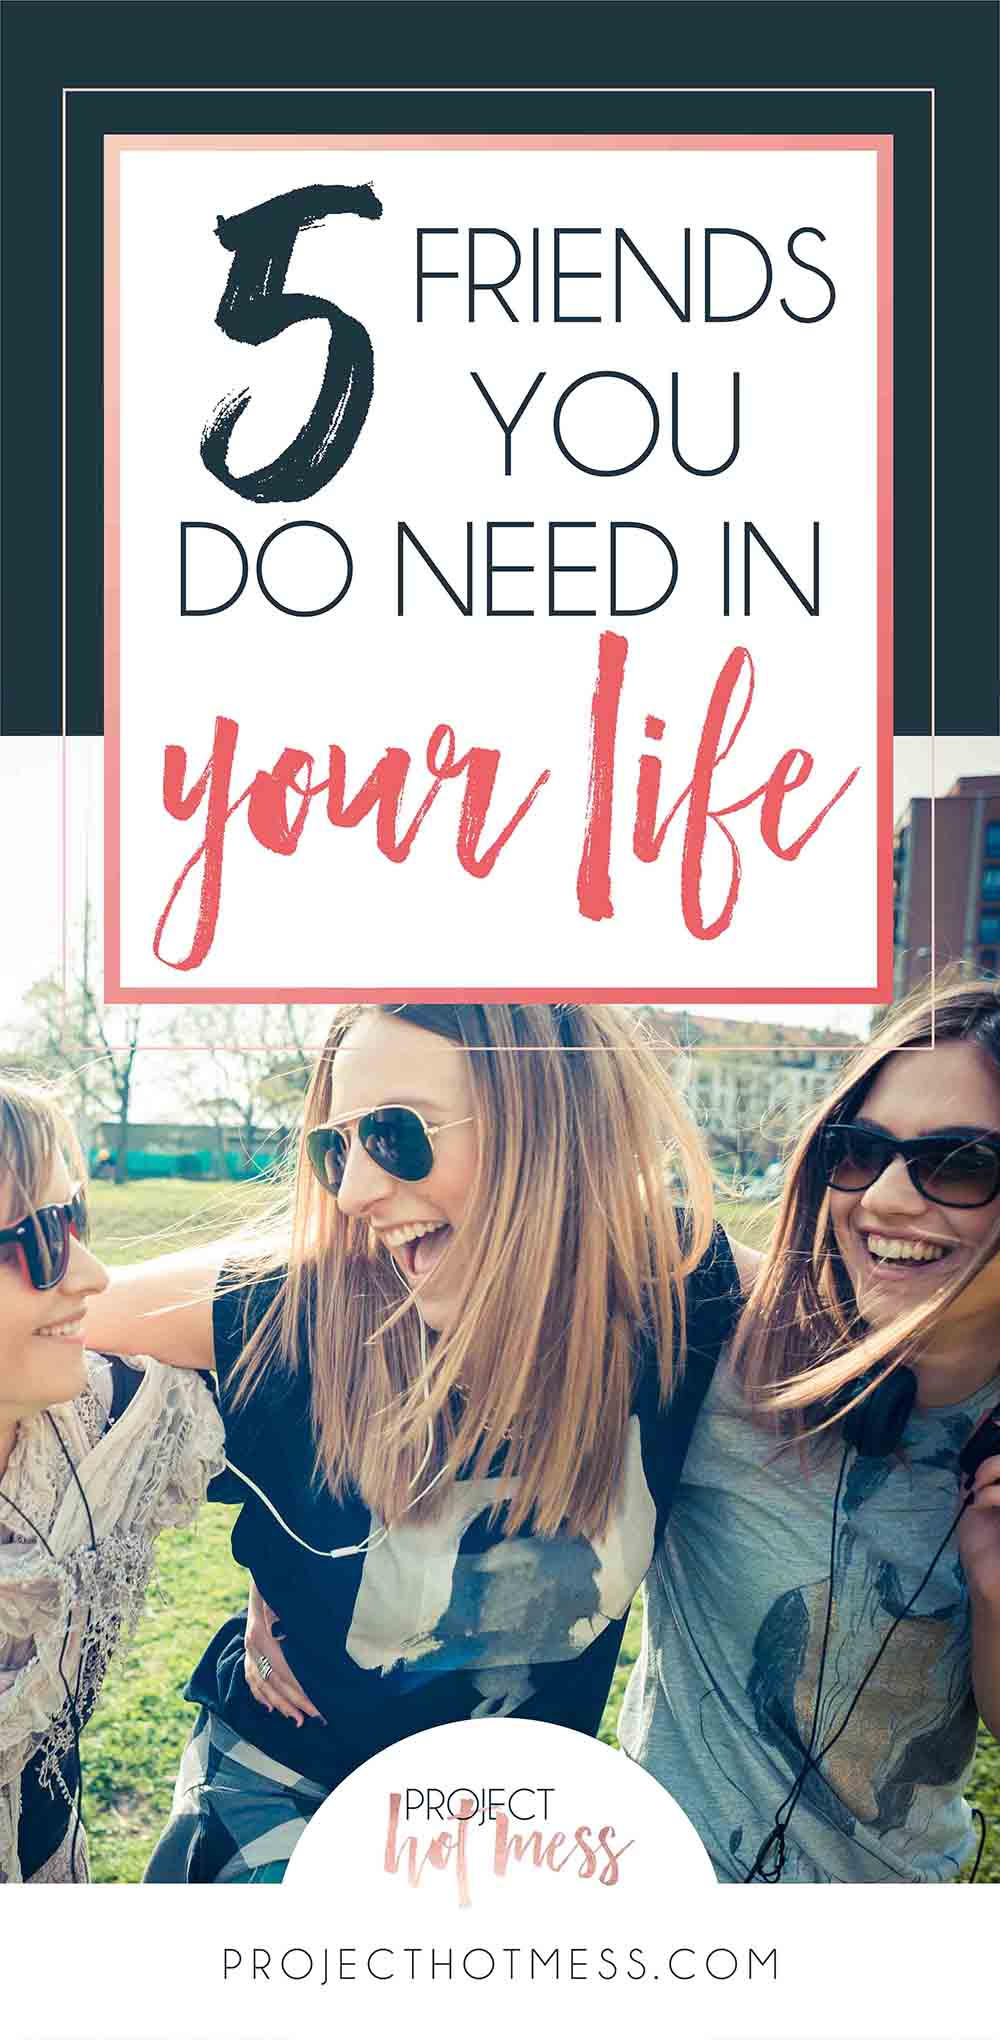 While sometimes it's easy to just focus on the people who are toxic and draining, it's also important to acknowledge the friends you do need in your life! And we think everyone needs these 5 people in their life!